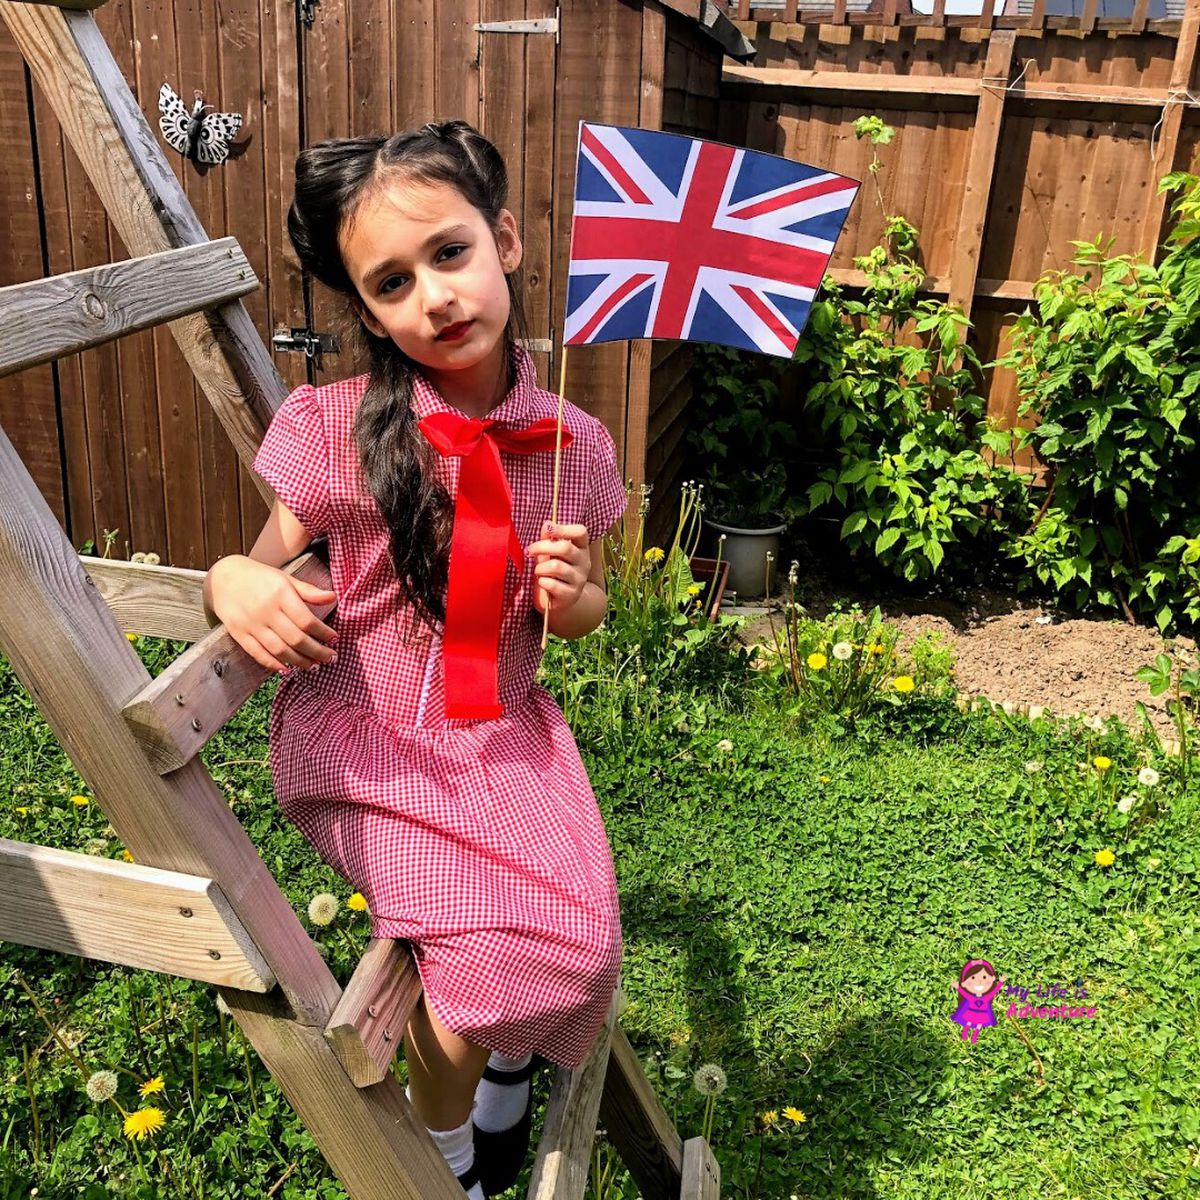 Safy, 7, from Wolverhampton